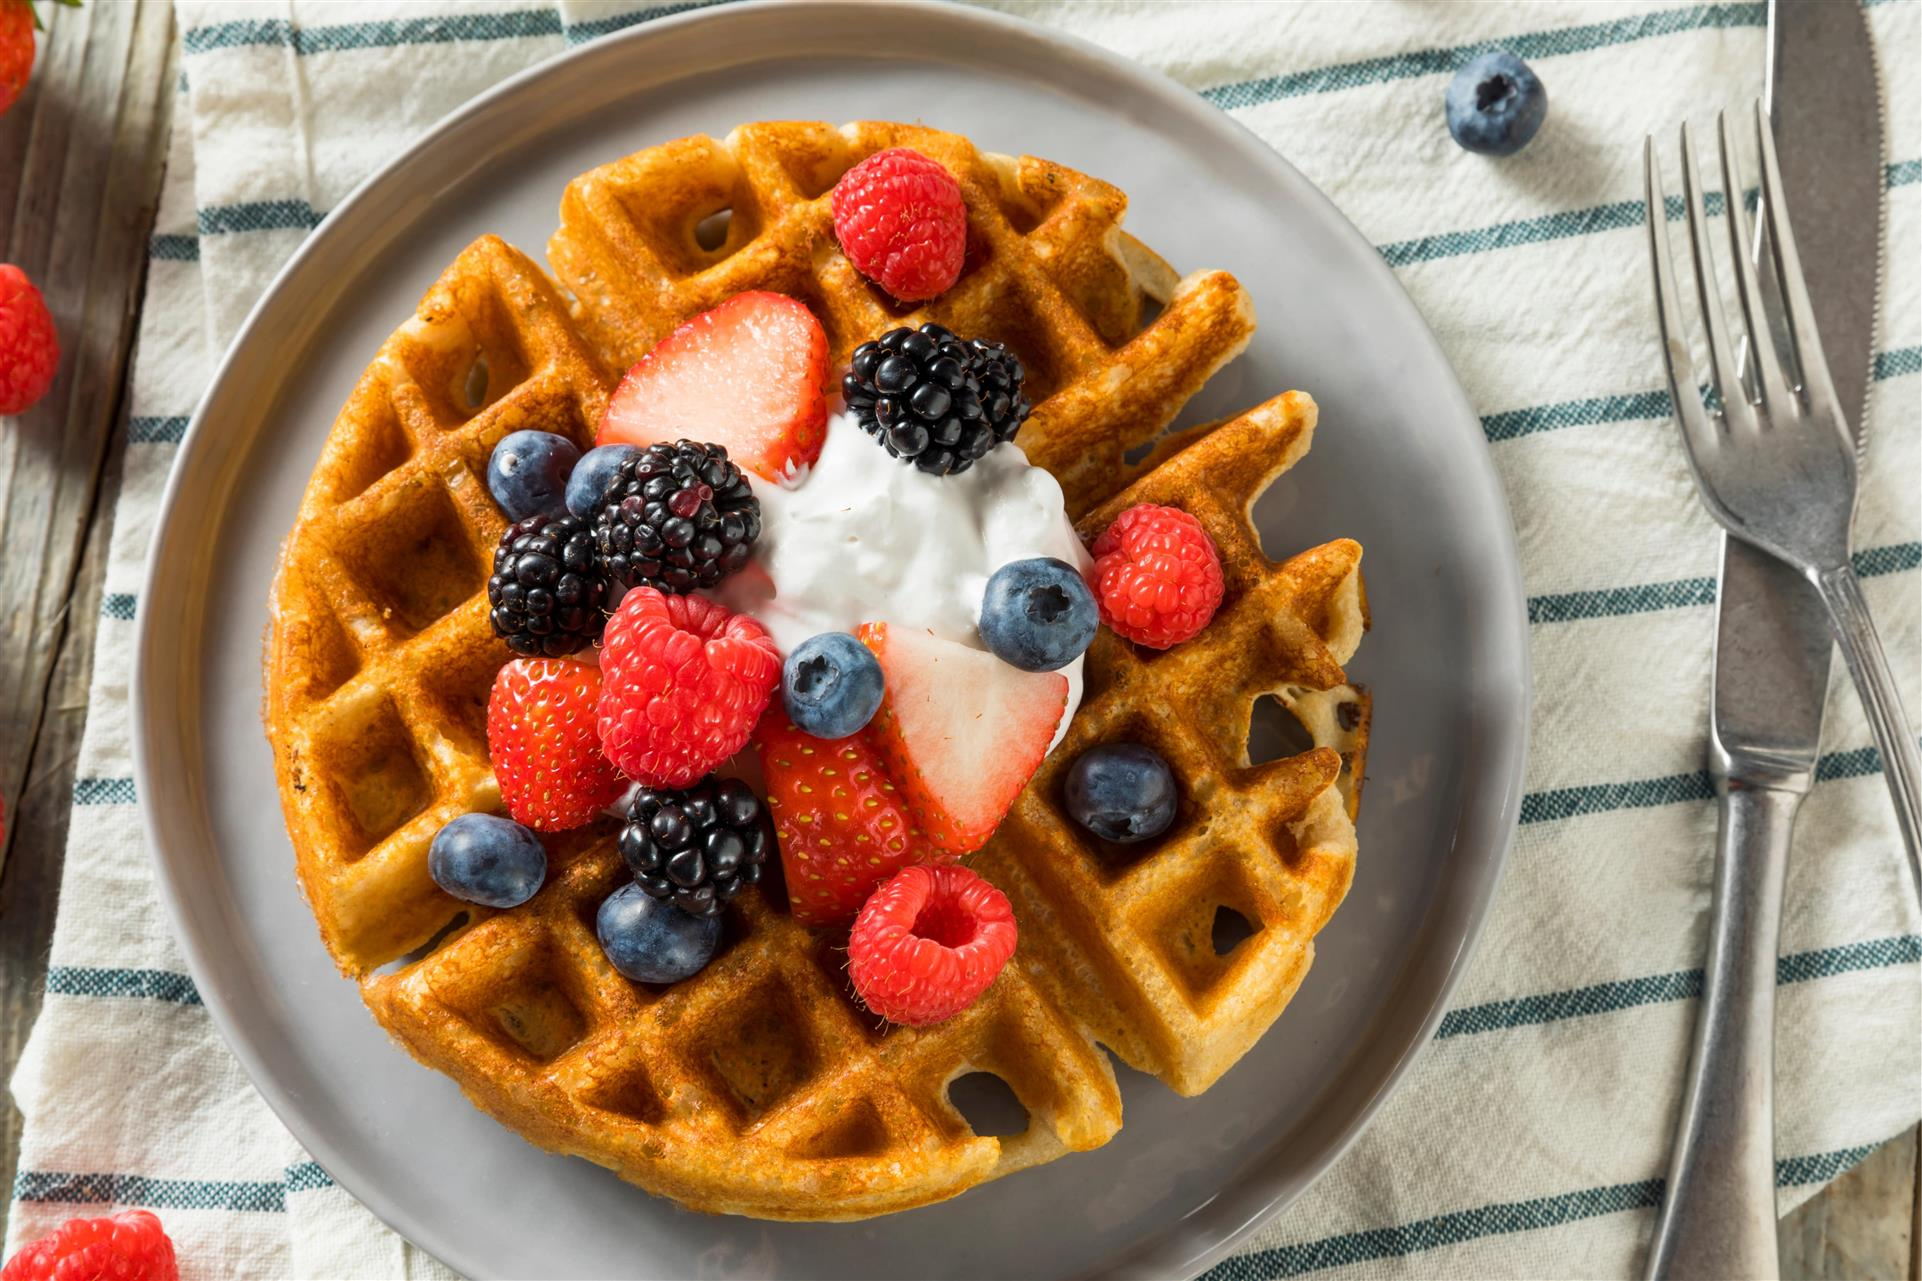 waffle topped with whipped cream, blueberries and raspberries